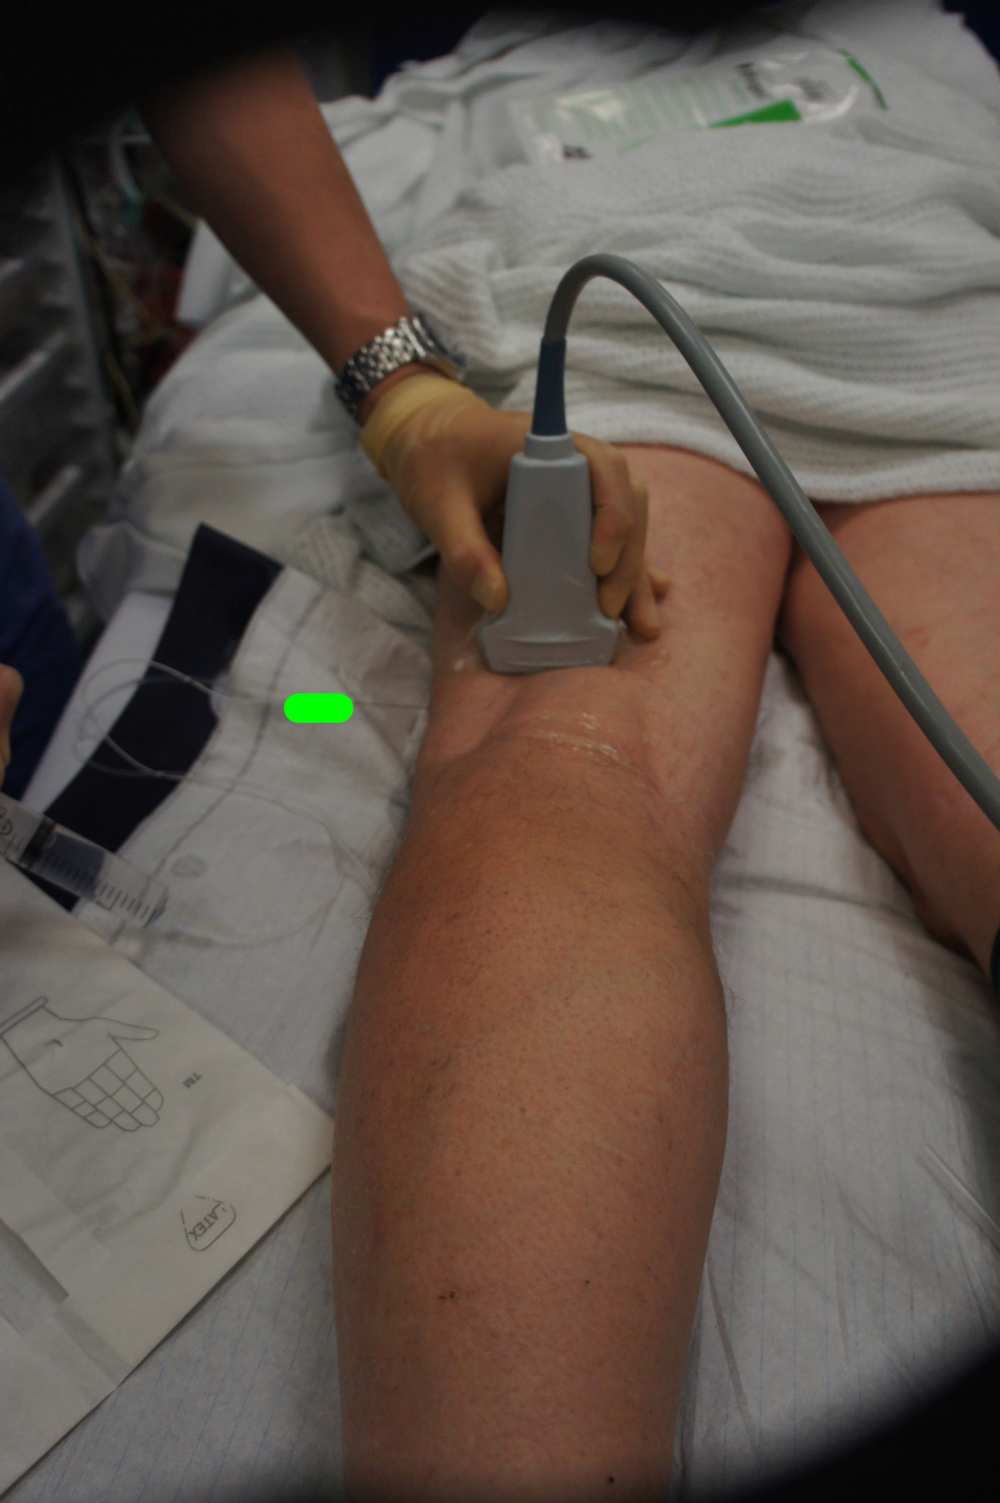 The anaesthetist uses an ultrasound scanner to see the nerves so that they can be accurately blocked.